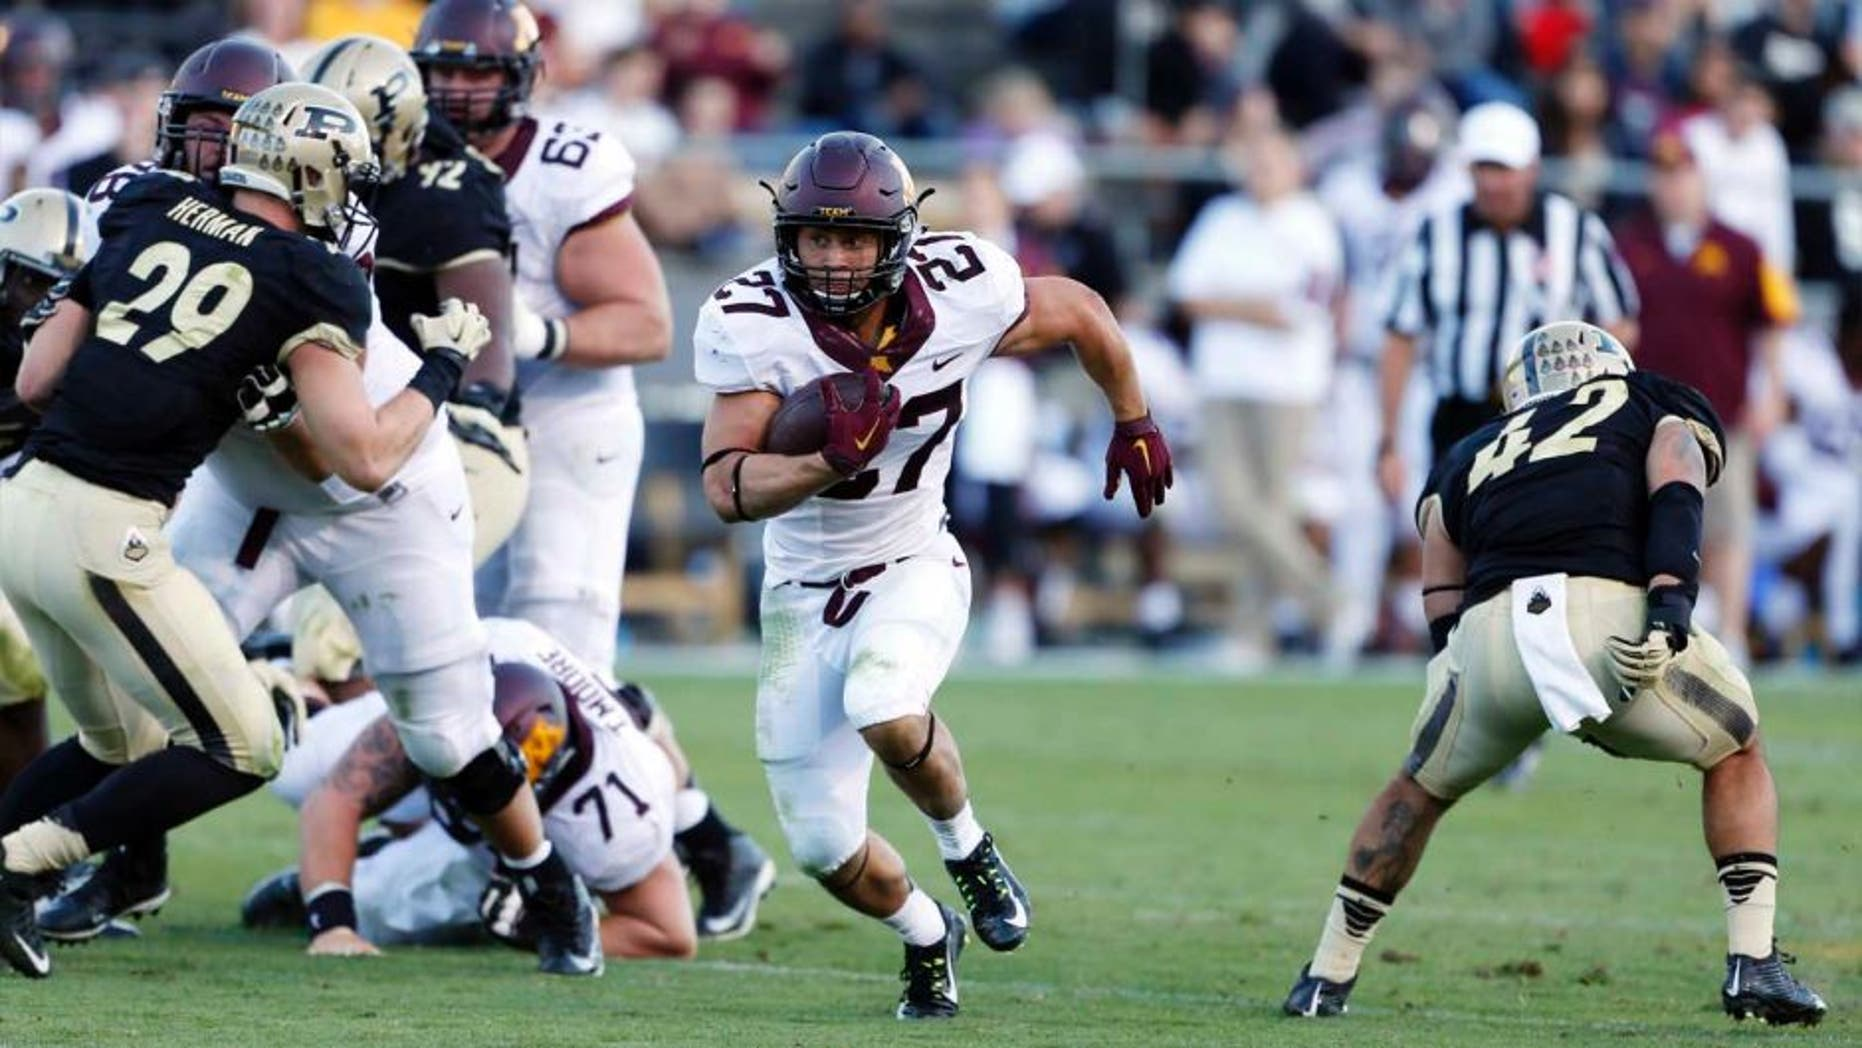 Minnesota Golden Gophers running back Shannon Brooks runs with the ball against the Purdue Boilermakers at Ross Ade Stadium in West Lafayette, Ind., on Saturday, Oct. 10, 2015. Minnesota won 41-13.